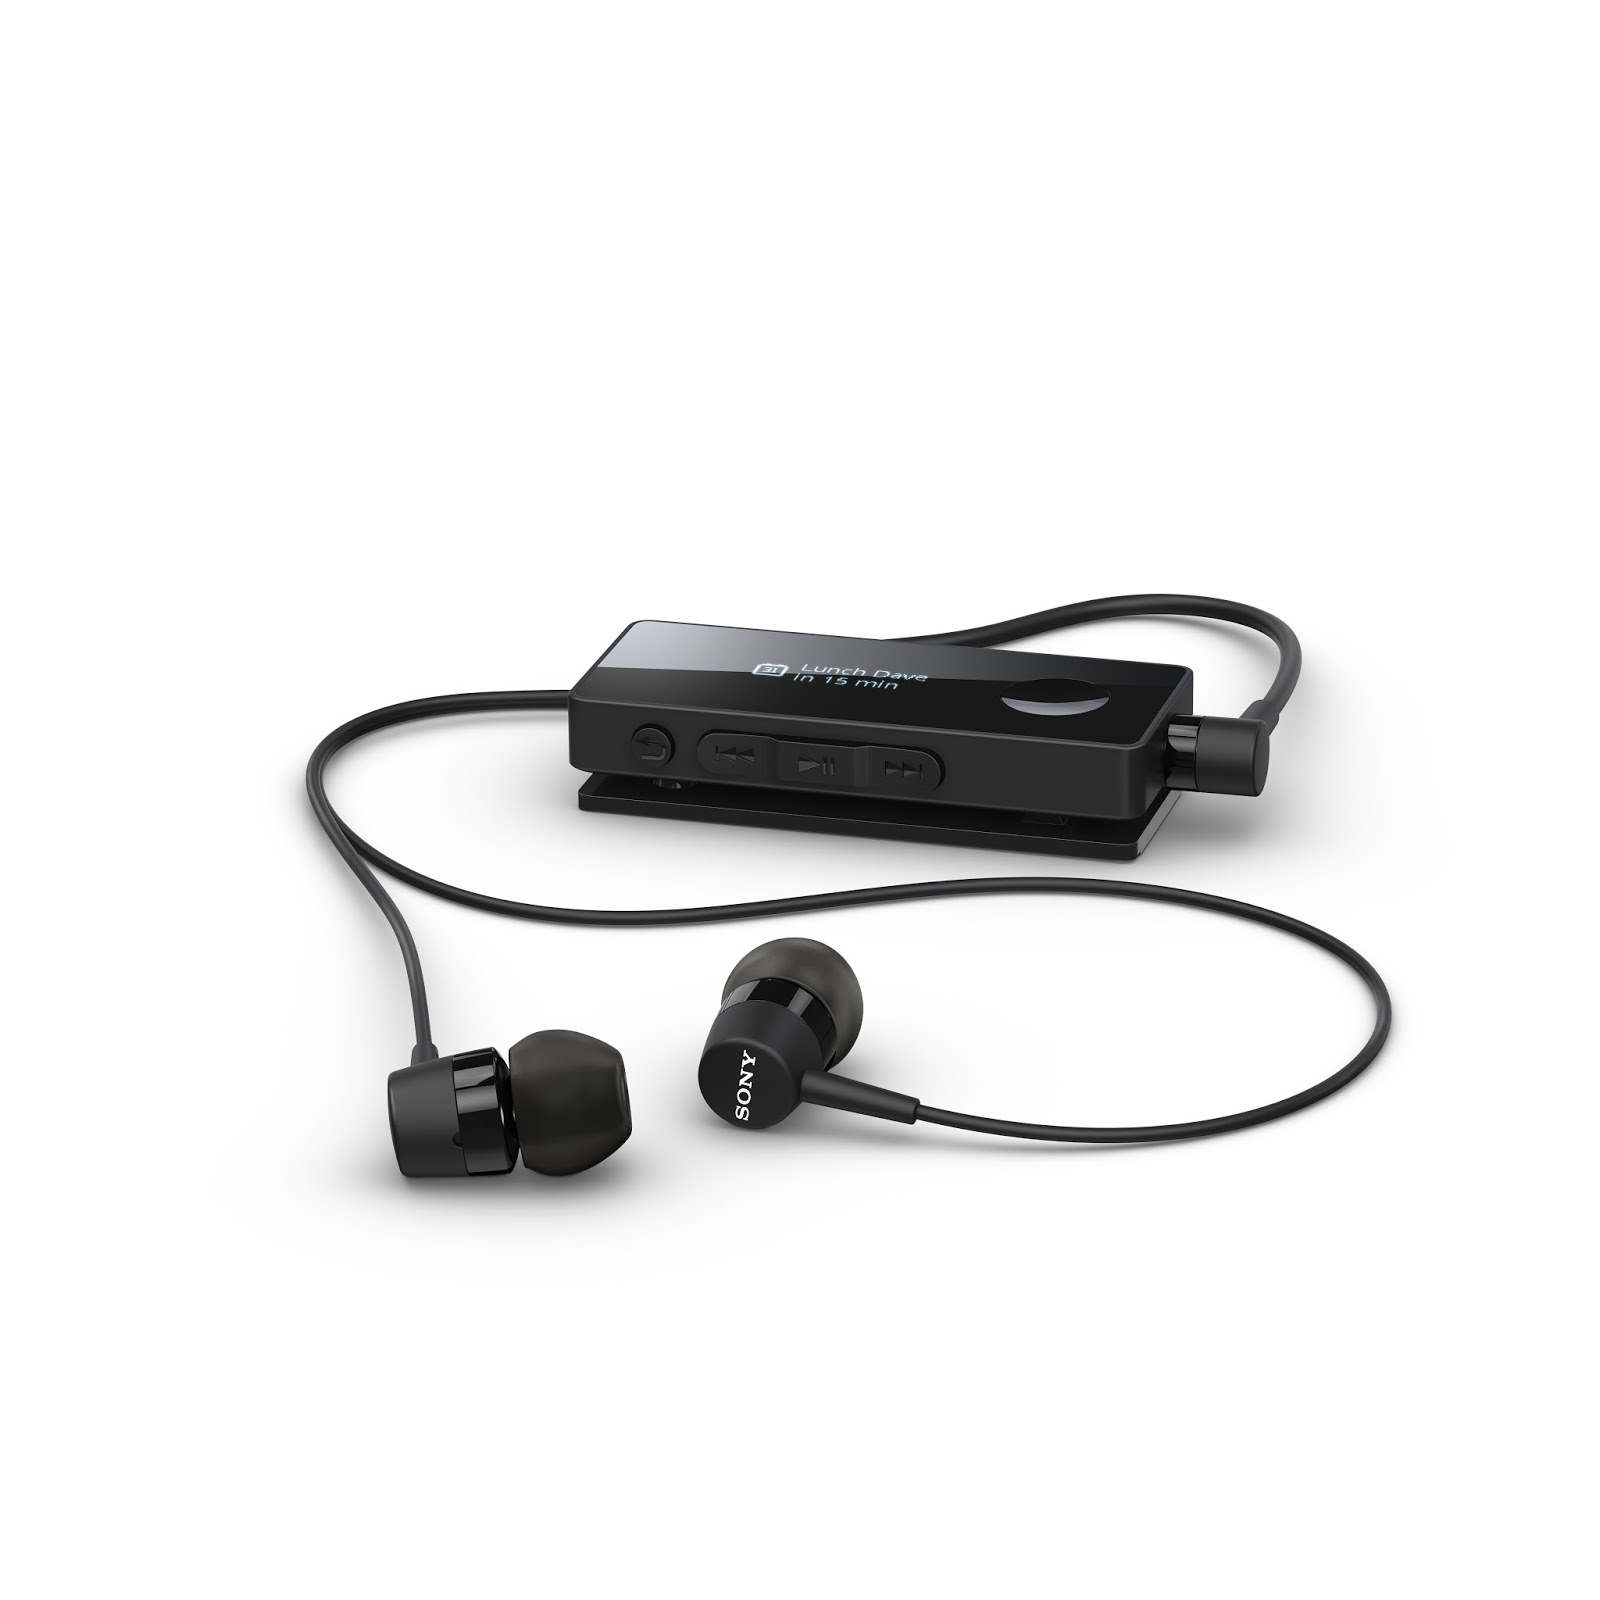 sony sbh50 bluetooth headset review the tech revolutionist. Black Bedroom Furniture Sets. Home Design Ideas